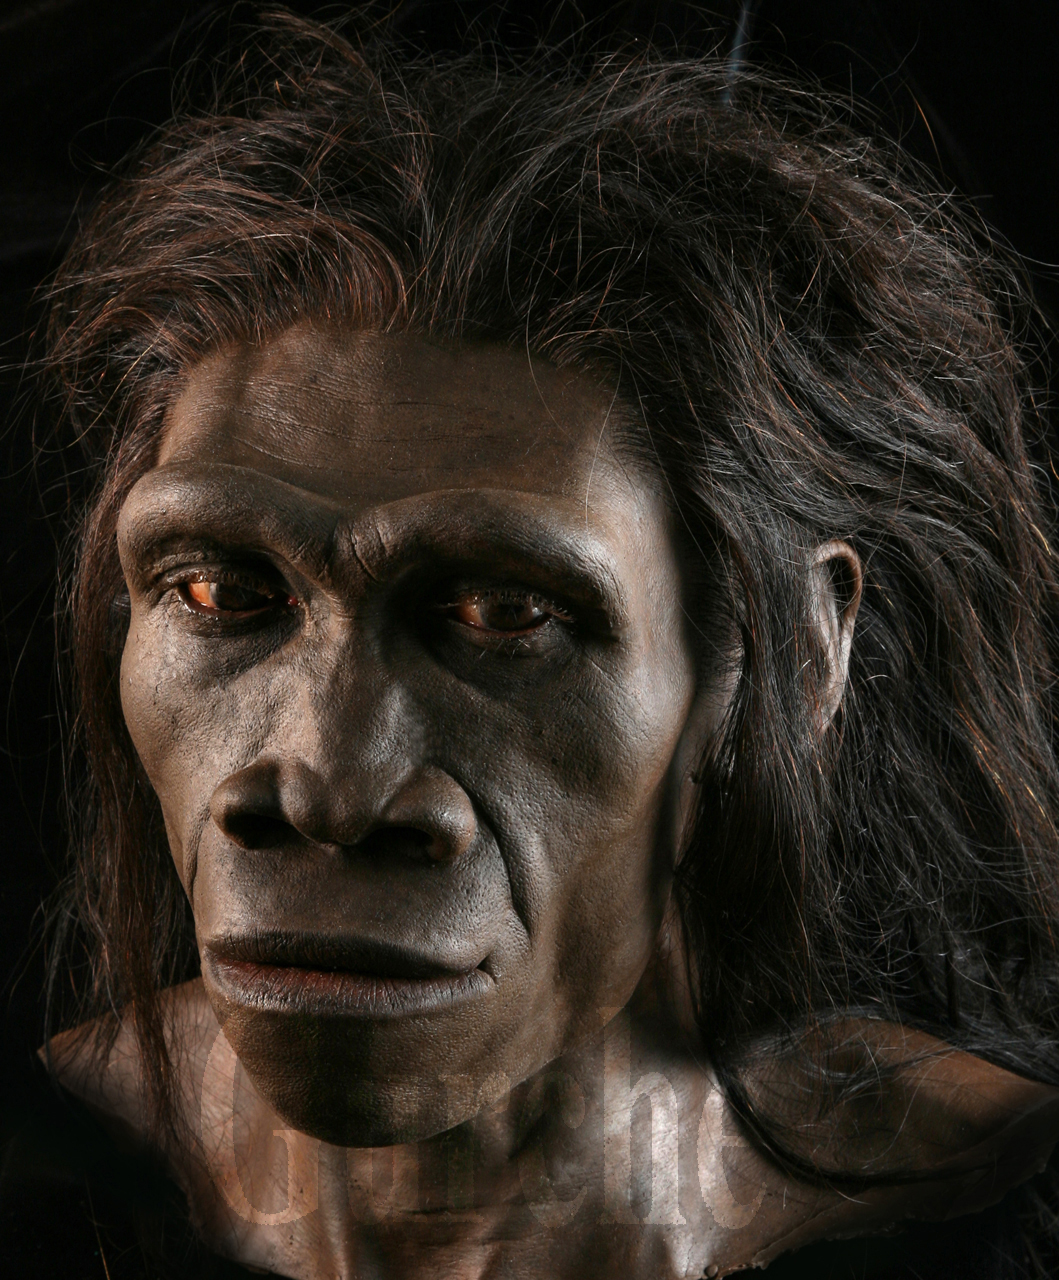 Image 654 Homo erectus female based on ER 3733 and the ER 992 mandible.jpg